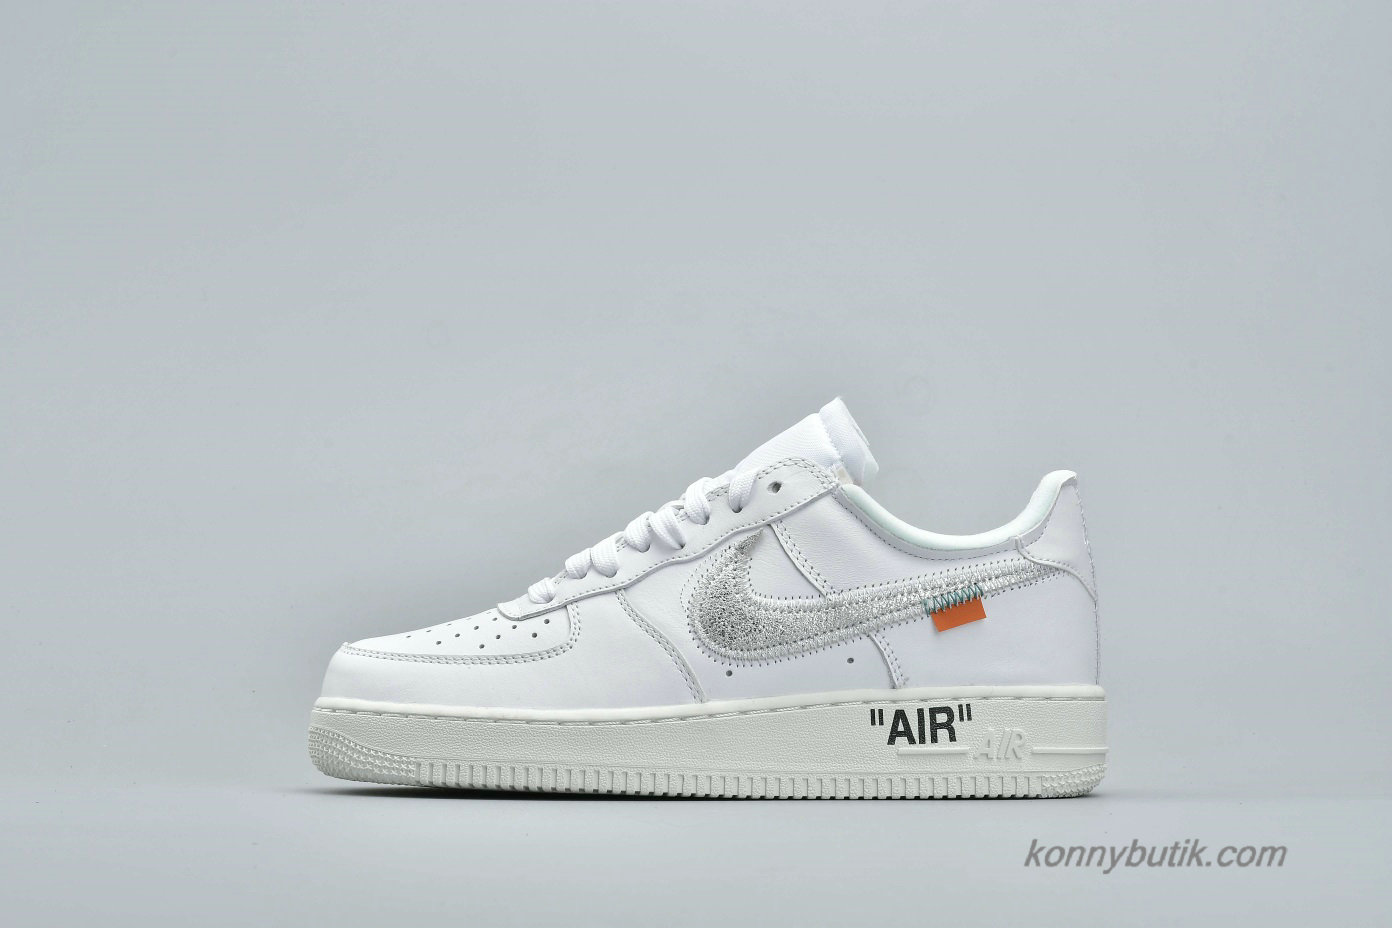 Off-White Nike Air Force 1 Low 07 Unisex Sko Hvid / Sølv (AO4297-100)